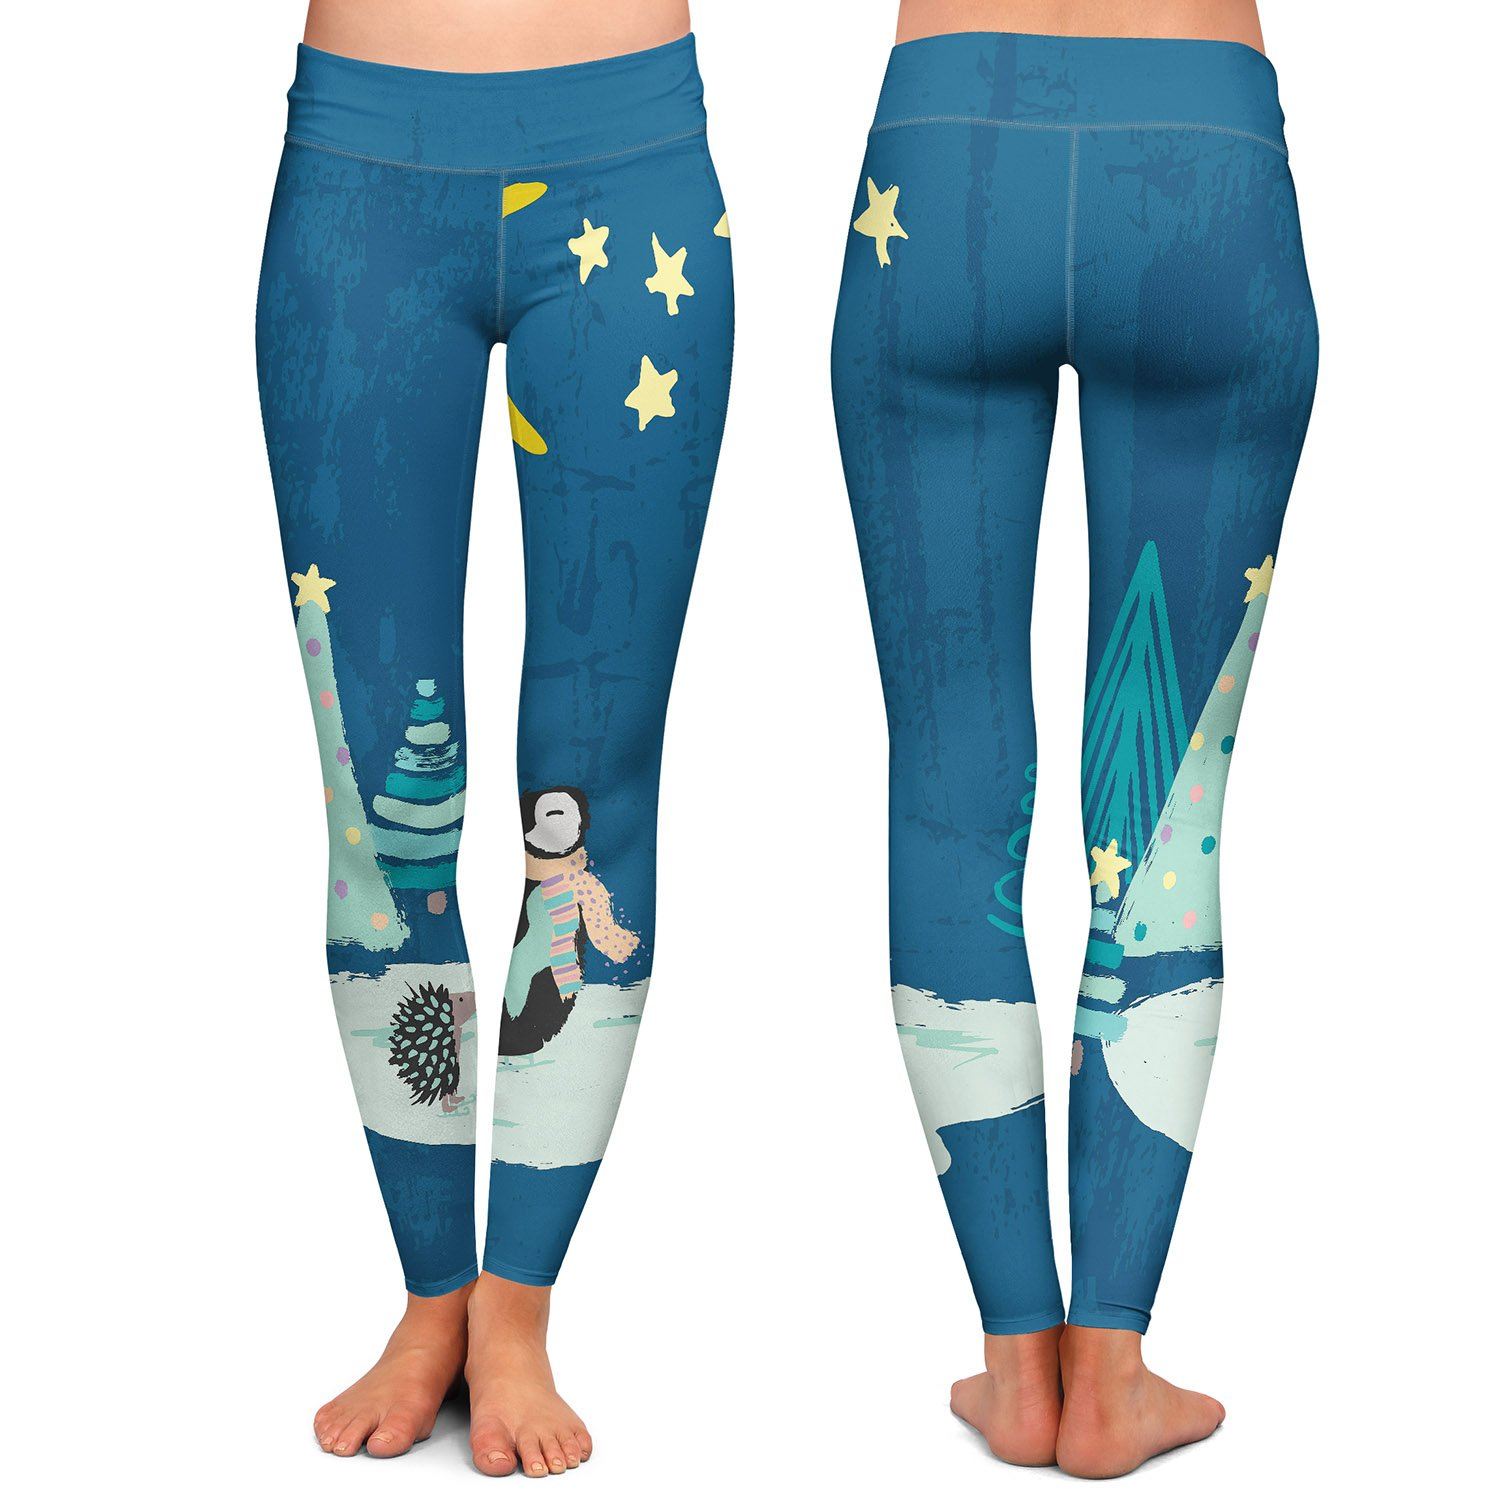 Christmas Penguin Athletic Yoga Leggings from DiaNoche Designs by Artist Metka Hiti